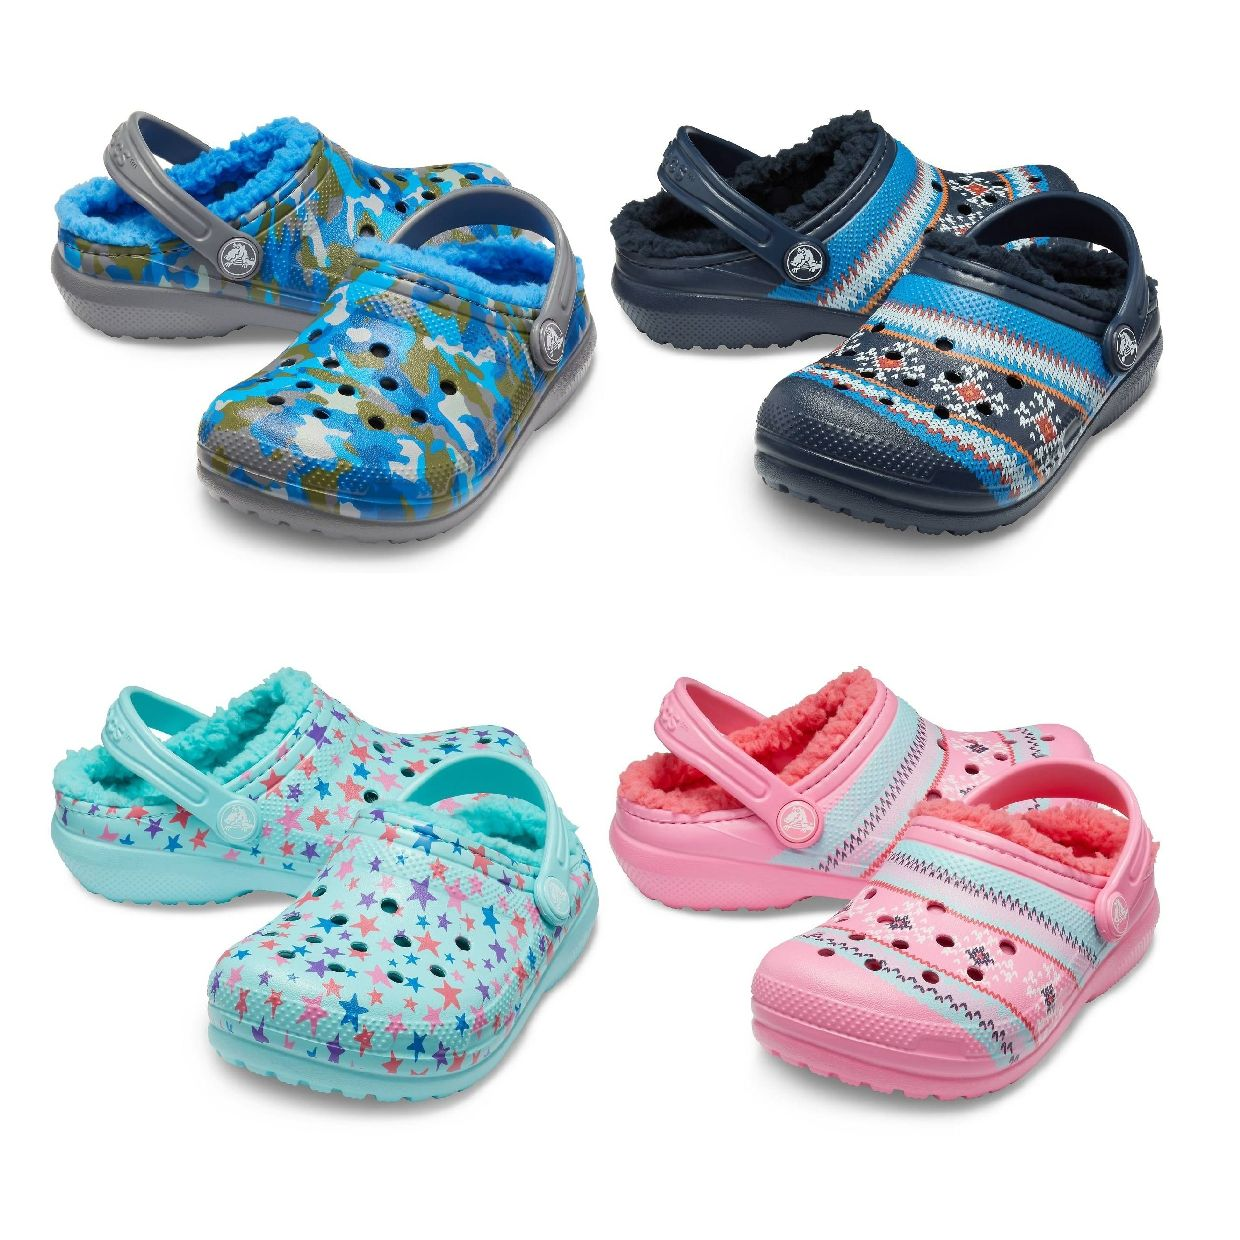 Crocs Classic Printed Lined Clog Kids Clogs Synthetik Kinder Schuhe HW19